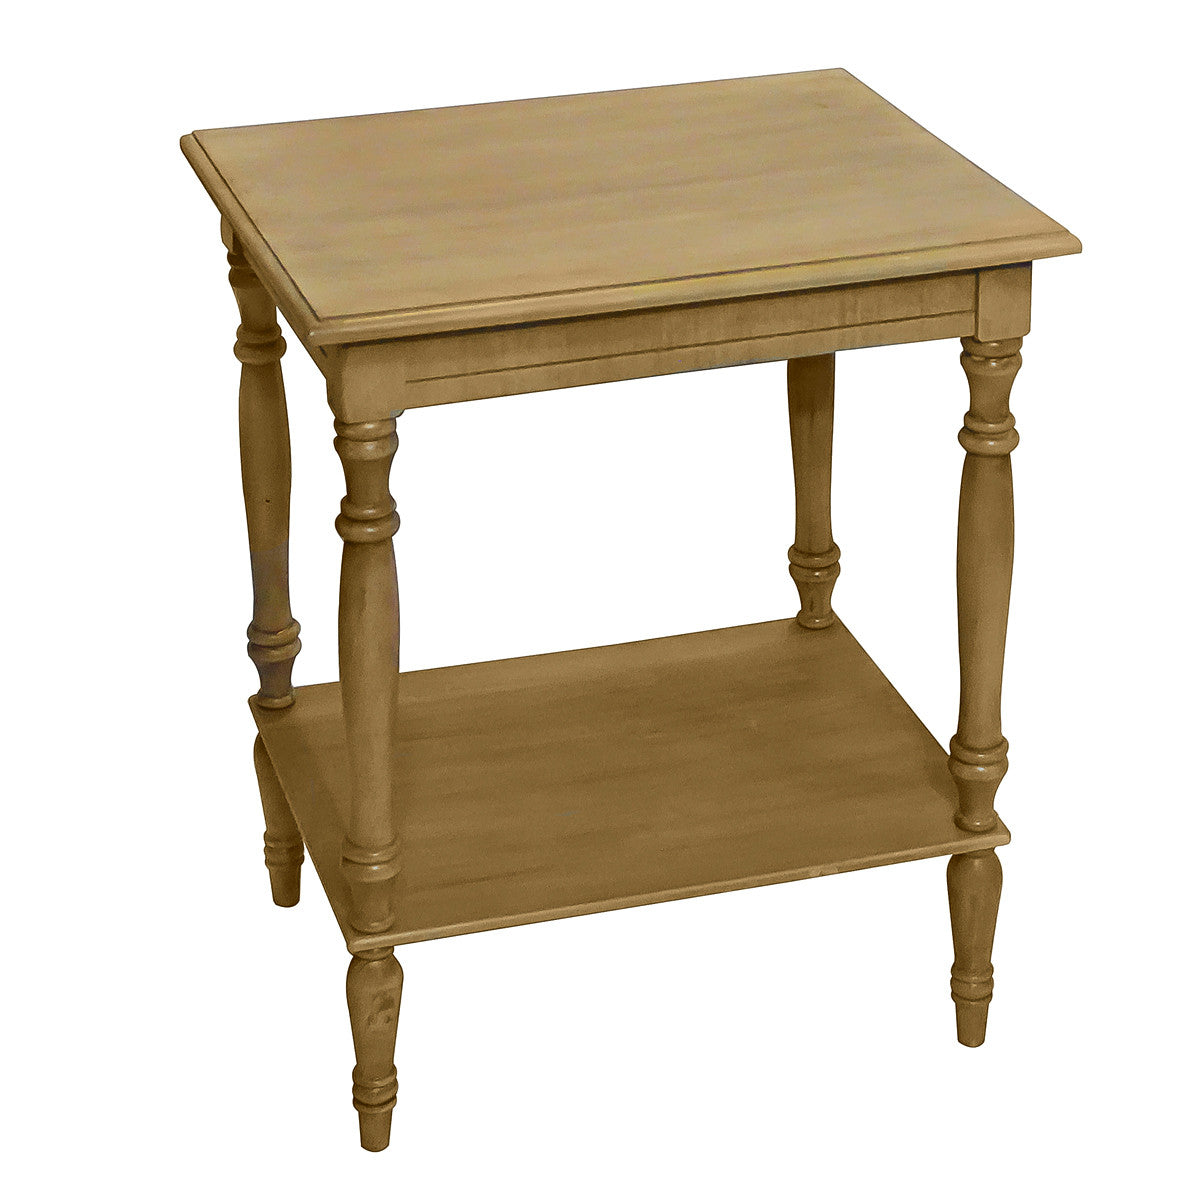 Sensational Sybil Side Table Natural With Gray Wash Caraccident5 Cool Chair Designs And Ideas Caraccident5Info